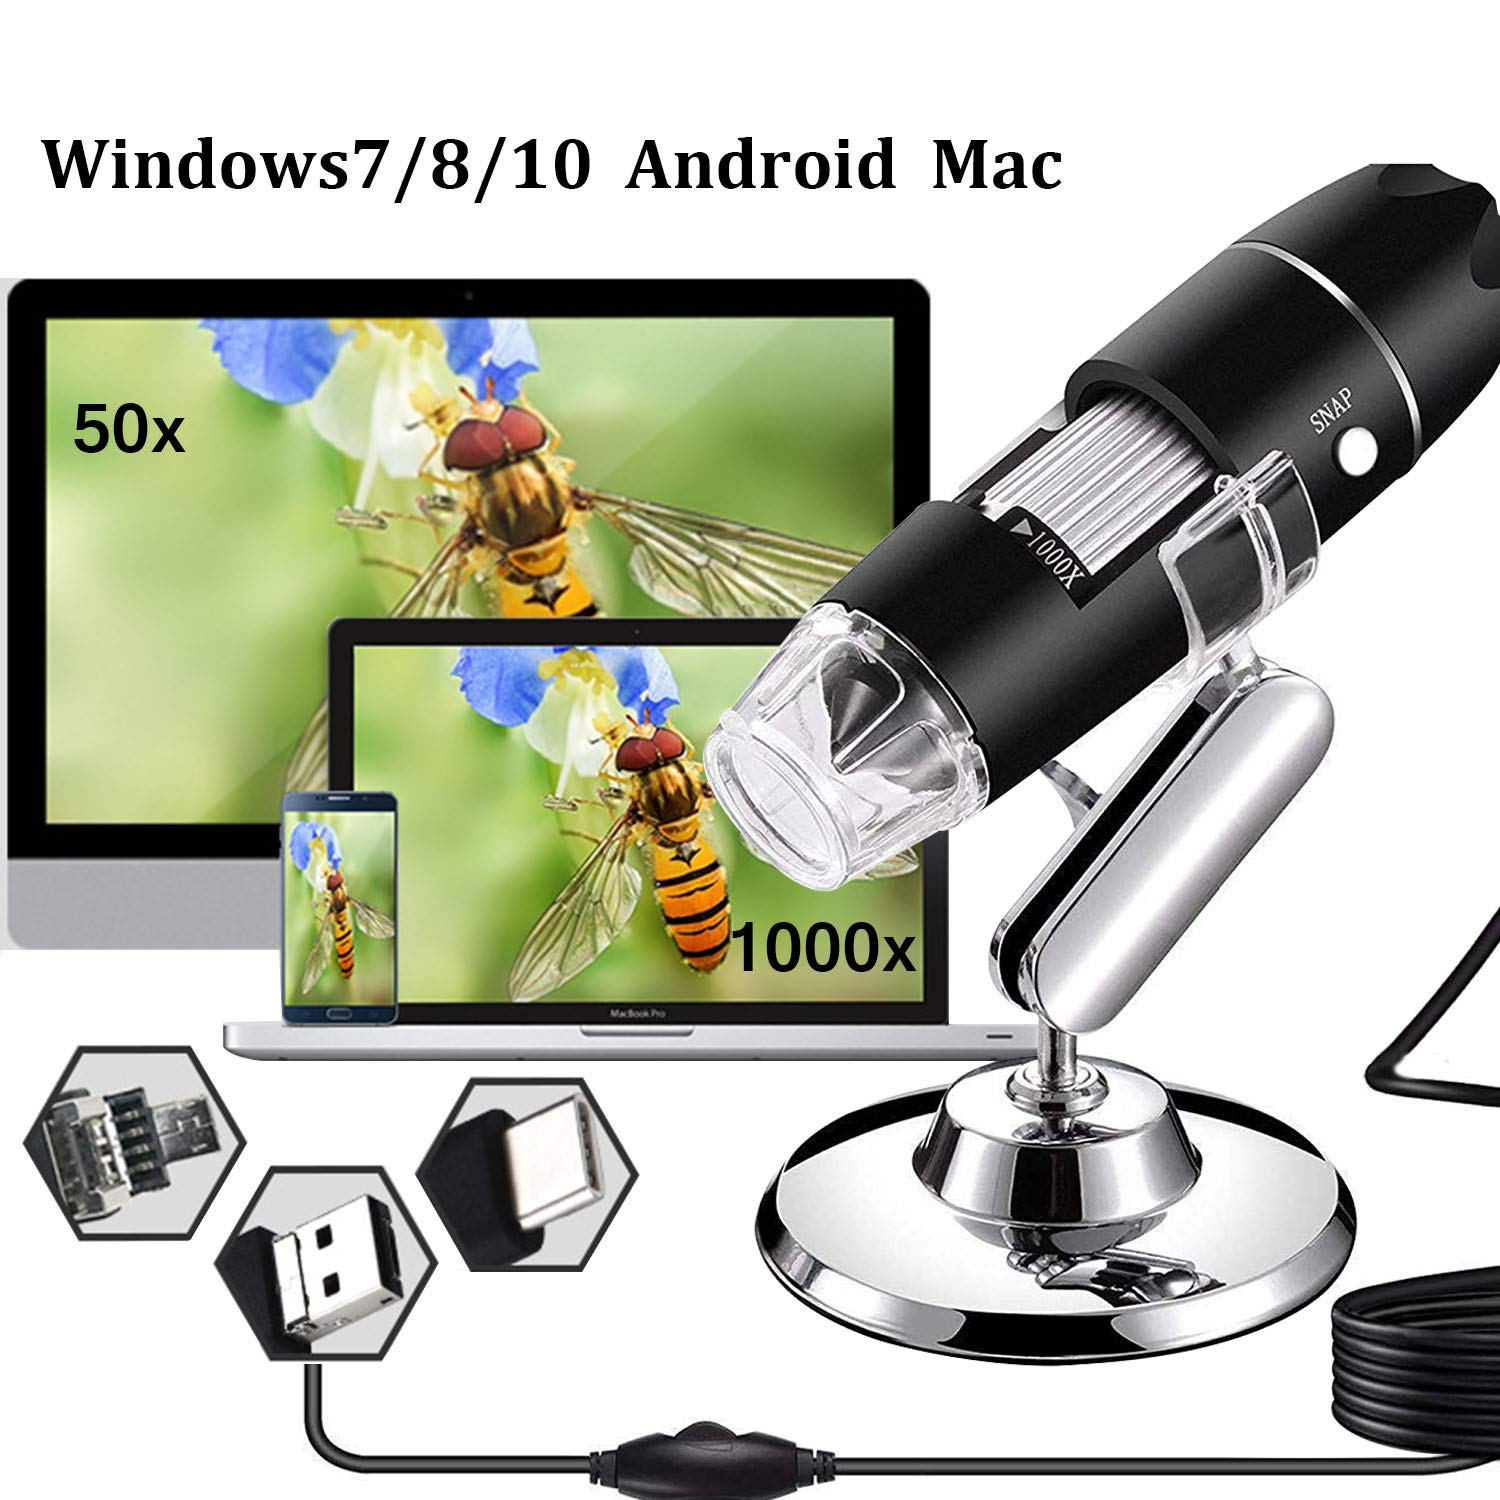 AOLOX USB Microscope, 1000x Handheld Digital Microscope Camera with 8 LED Light and Stand Hobby Tools for Kids, Students, Adults, Compatible with Mac/ Window 7/Android